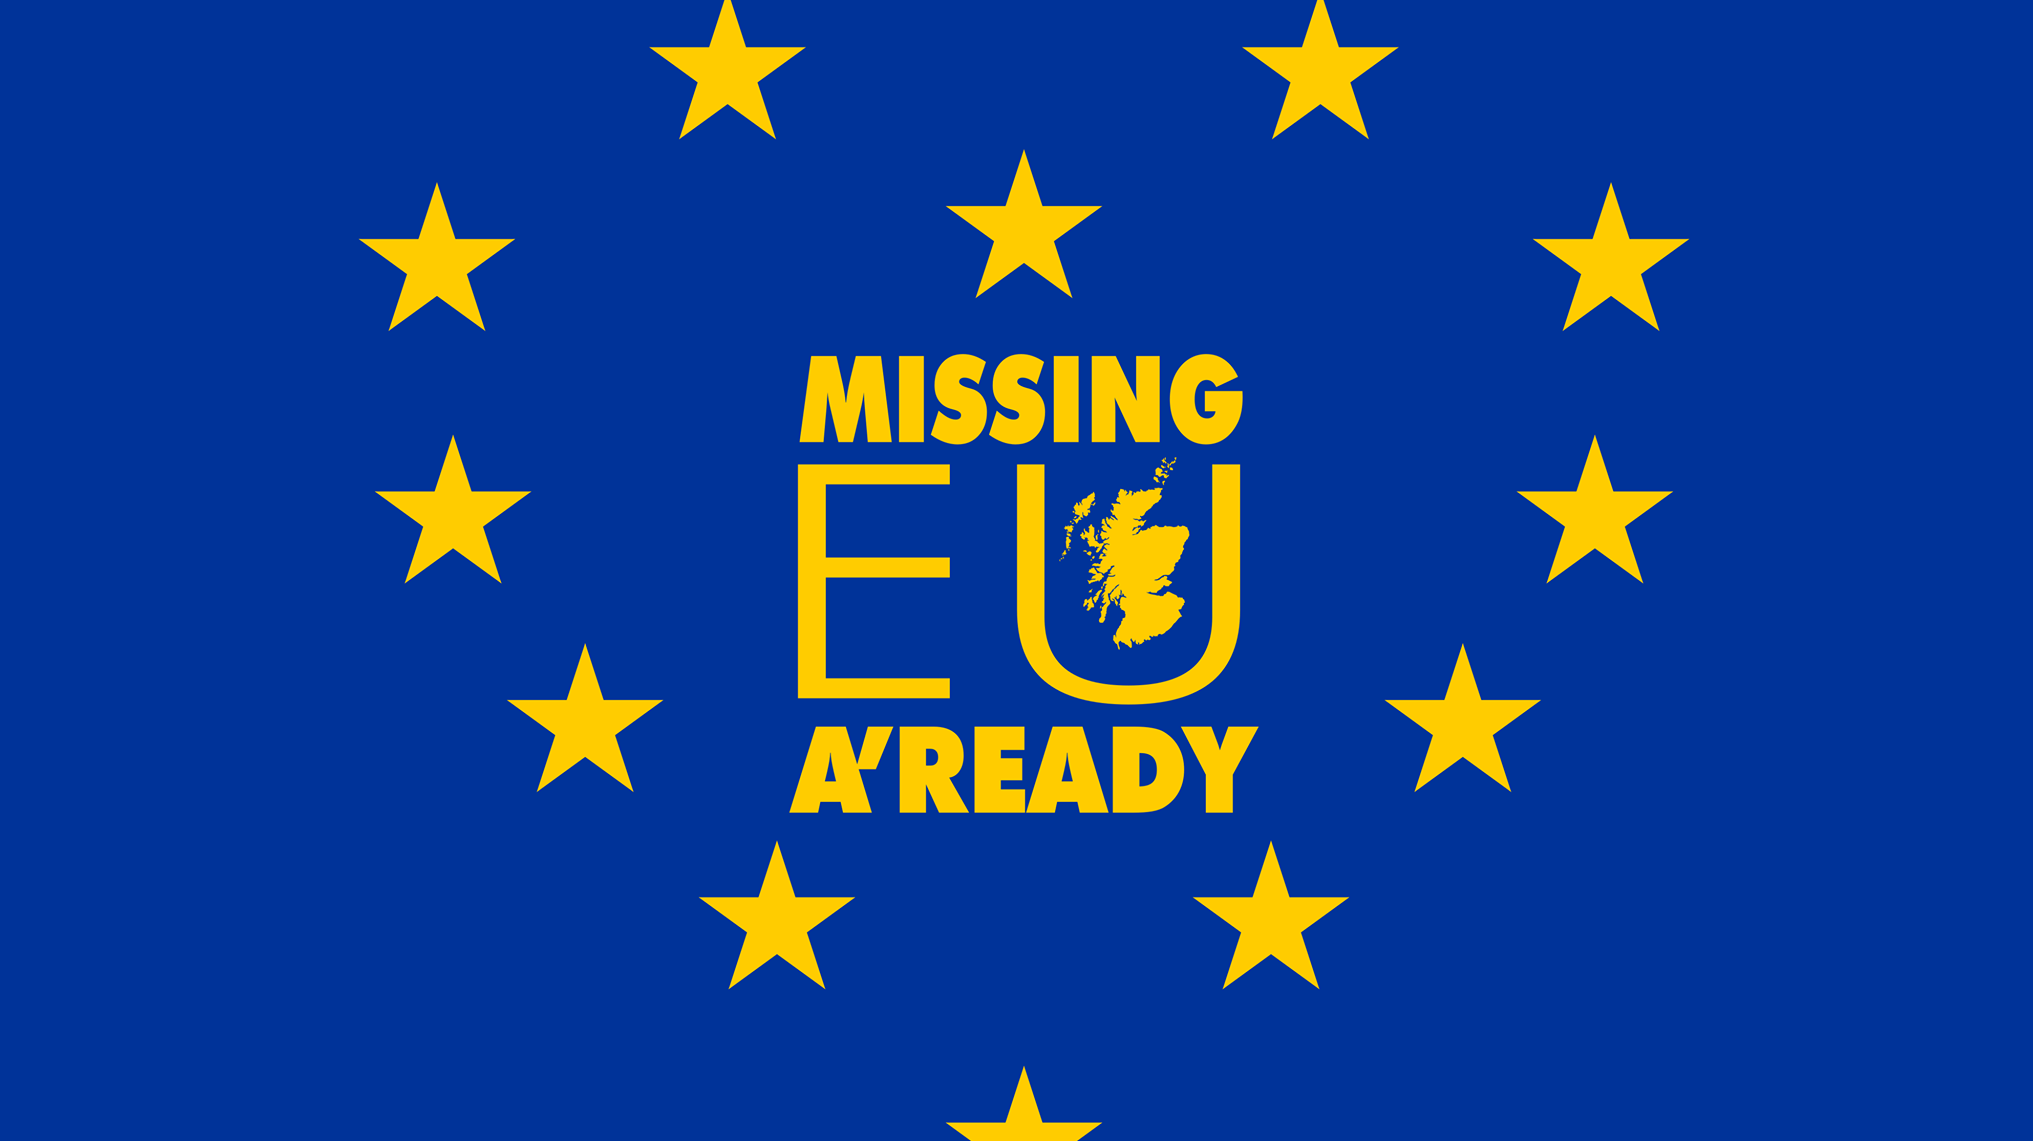 Missing EU a'ready - Edinburgh